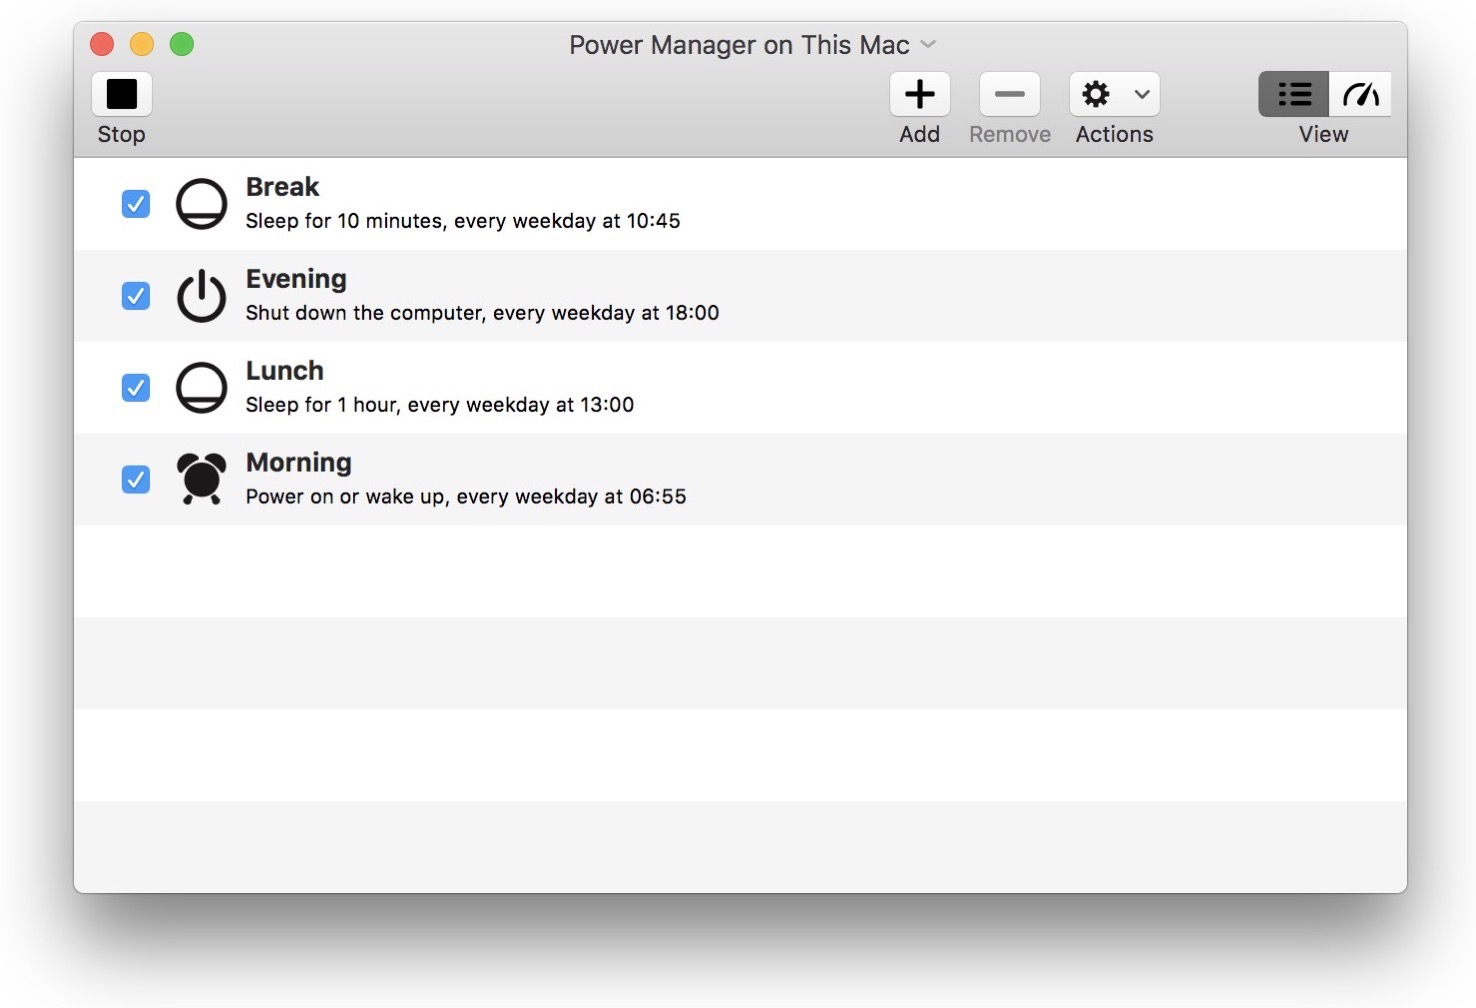 Power Manager Mac